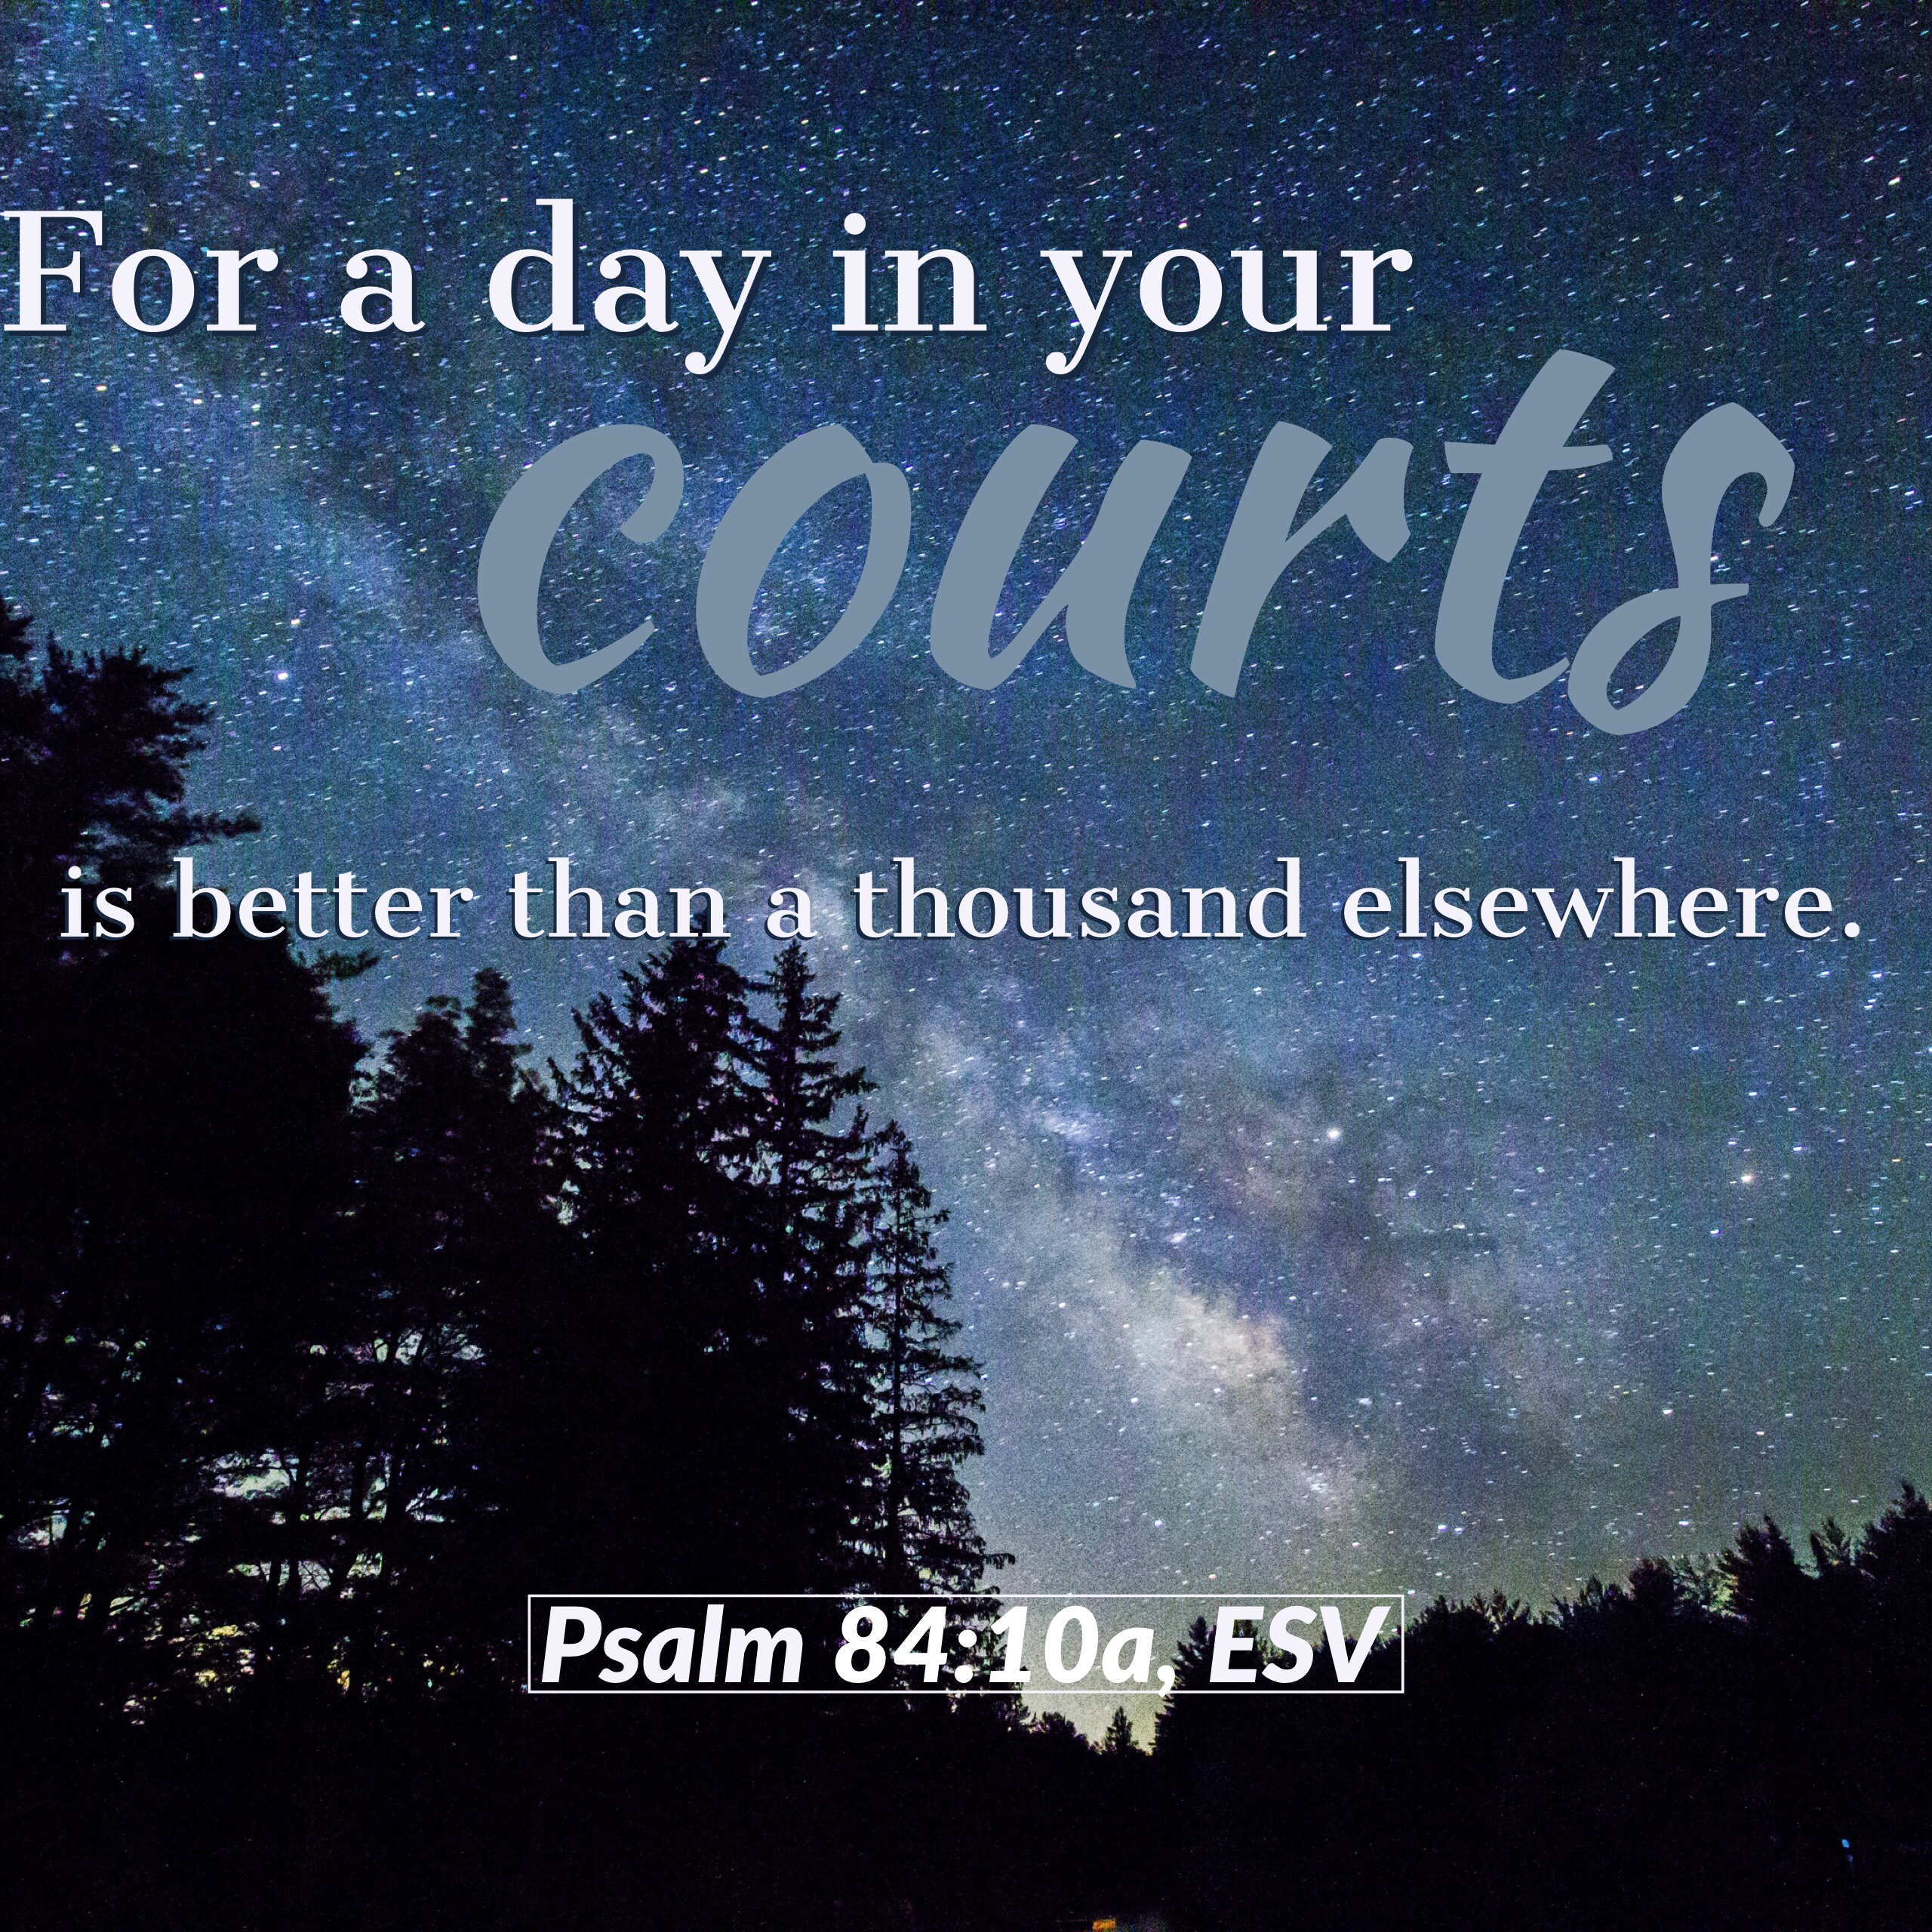 """""""For a day in your courts is better than a thousand elsewhere. I would rather be a doorkeeper in the house of my God than dwell in the tents of wickedness,"""" (Psalm 84:10, ESV)."""